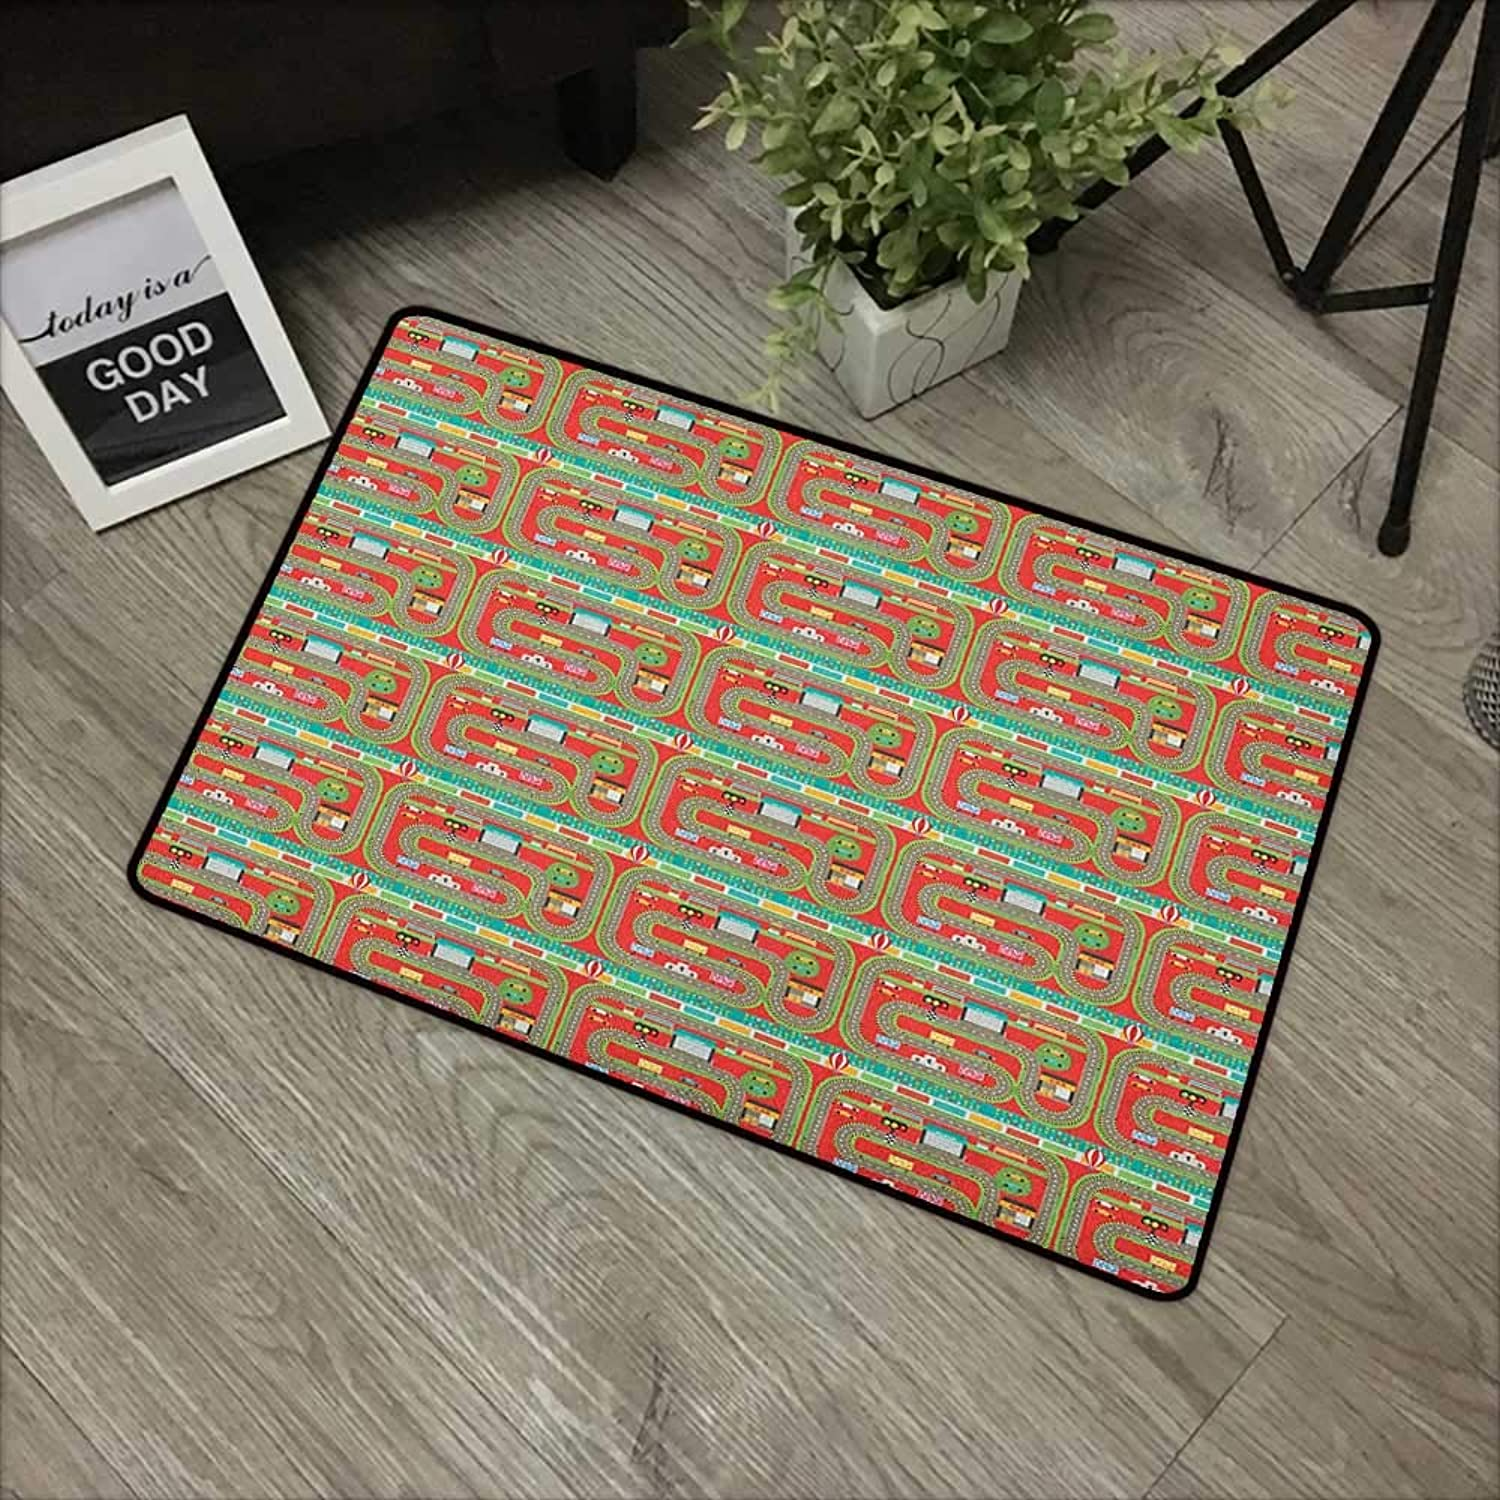 Hall mat W35 x L59 INCH Kids Car Race Track Roadway Activity,Car Racing Competition Facilities Bleacher Audience, Multicolor with Non-Slip Backing Door Mat Carpet